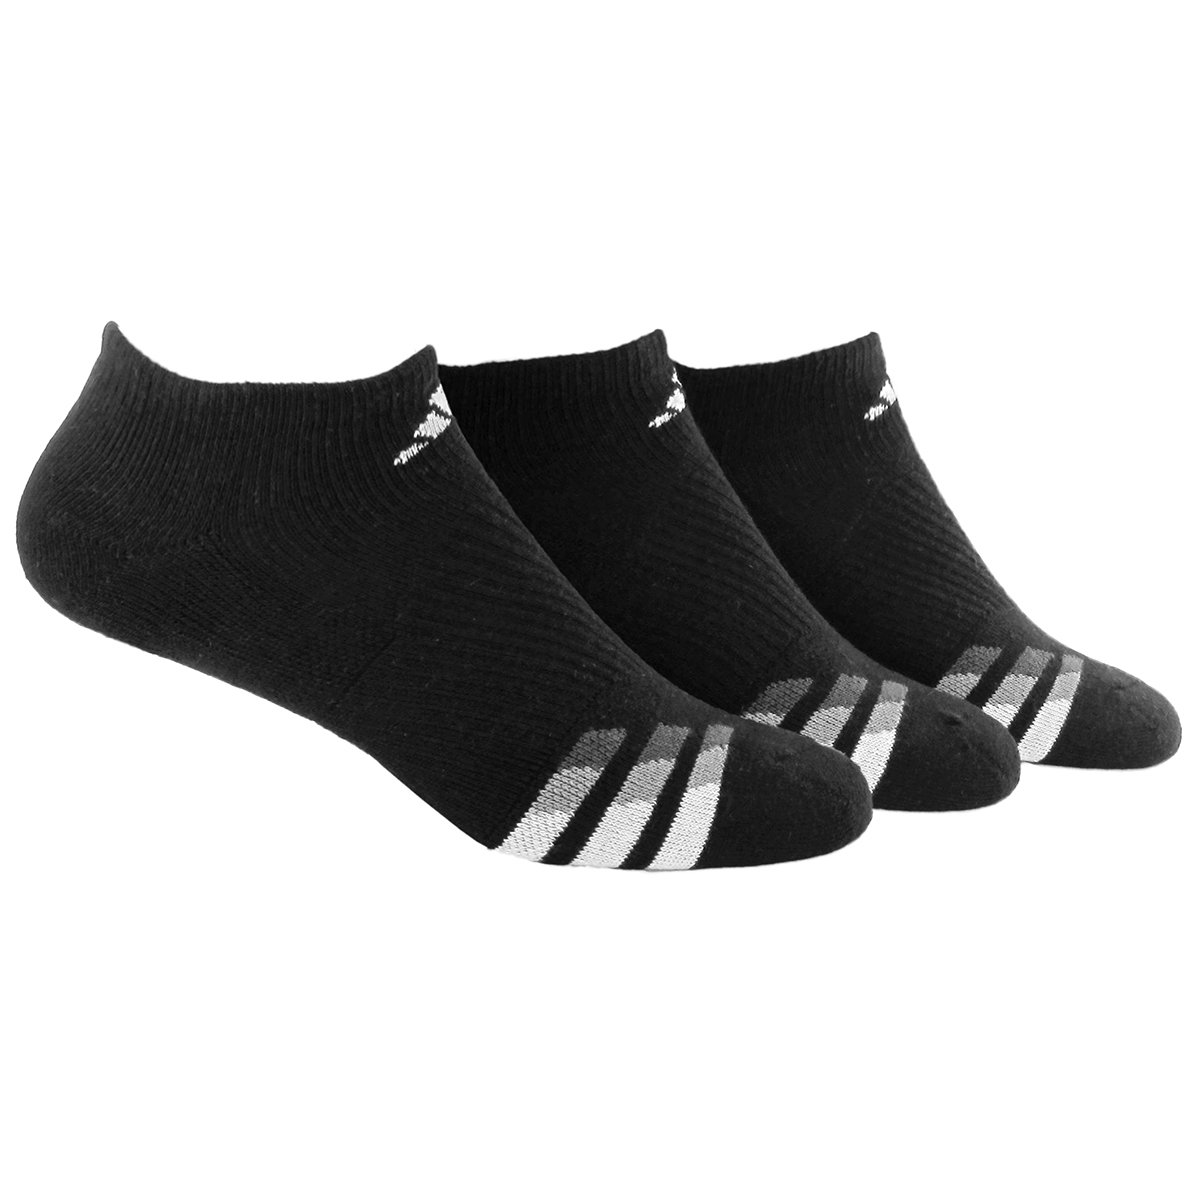 newest collection efb15 3f0c3 Amazon.com Mens Cushioned No Show Socks (3-Pack) Sports  Out